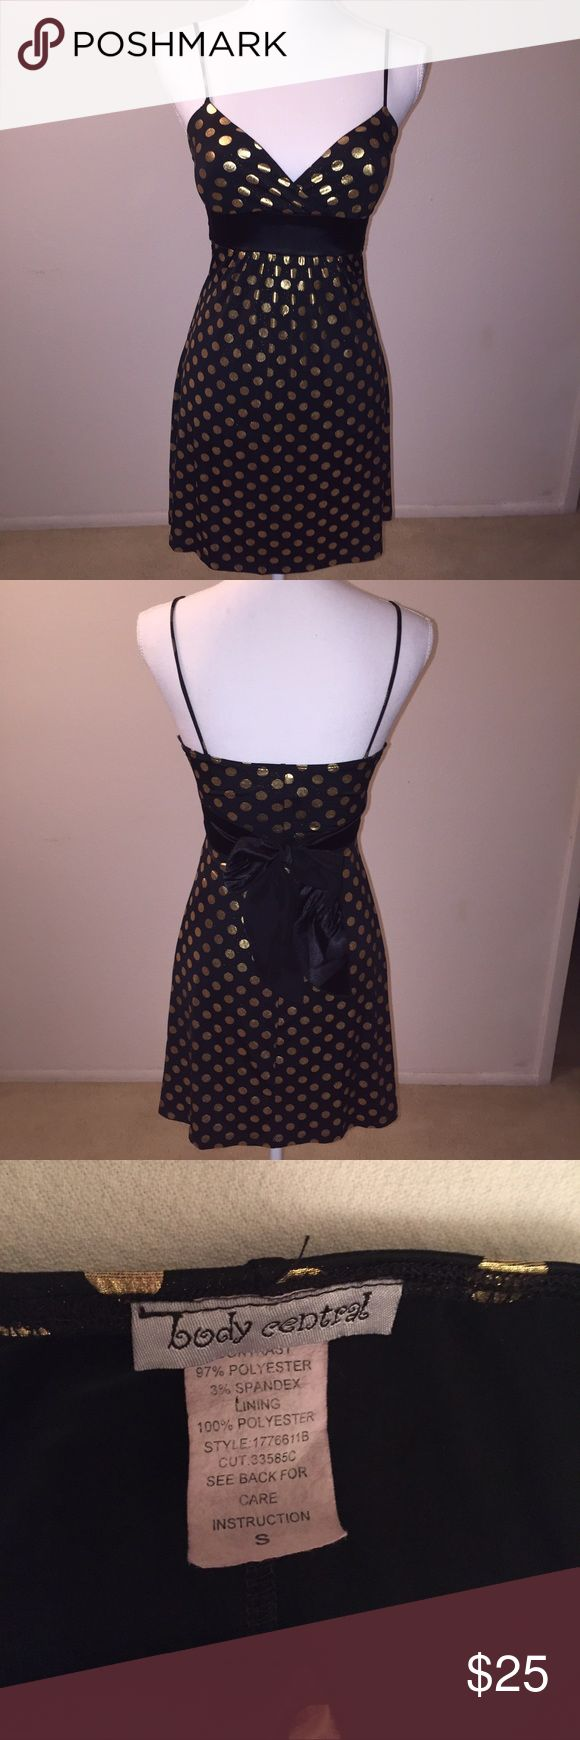 Body Central Black Gold Metallic Polka Dots Dress This adorable dress from Body Central features shiny gold polka dots and a big ribbon tie in the back. SO cute! It is size small and is in excellent condition. If you have any questions, just ask! Body Central Dresses